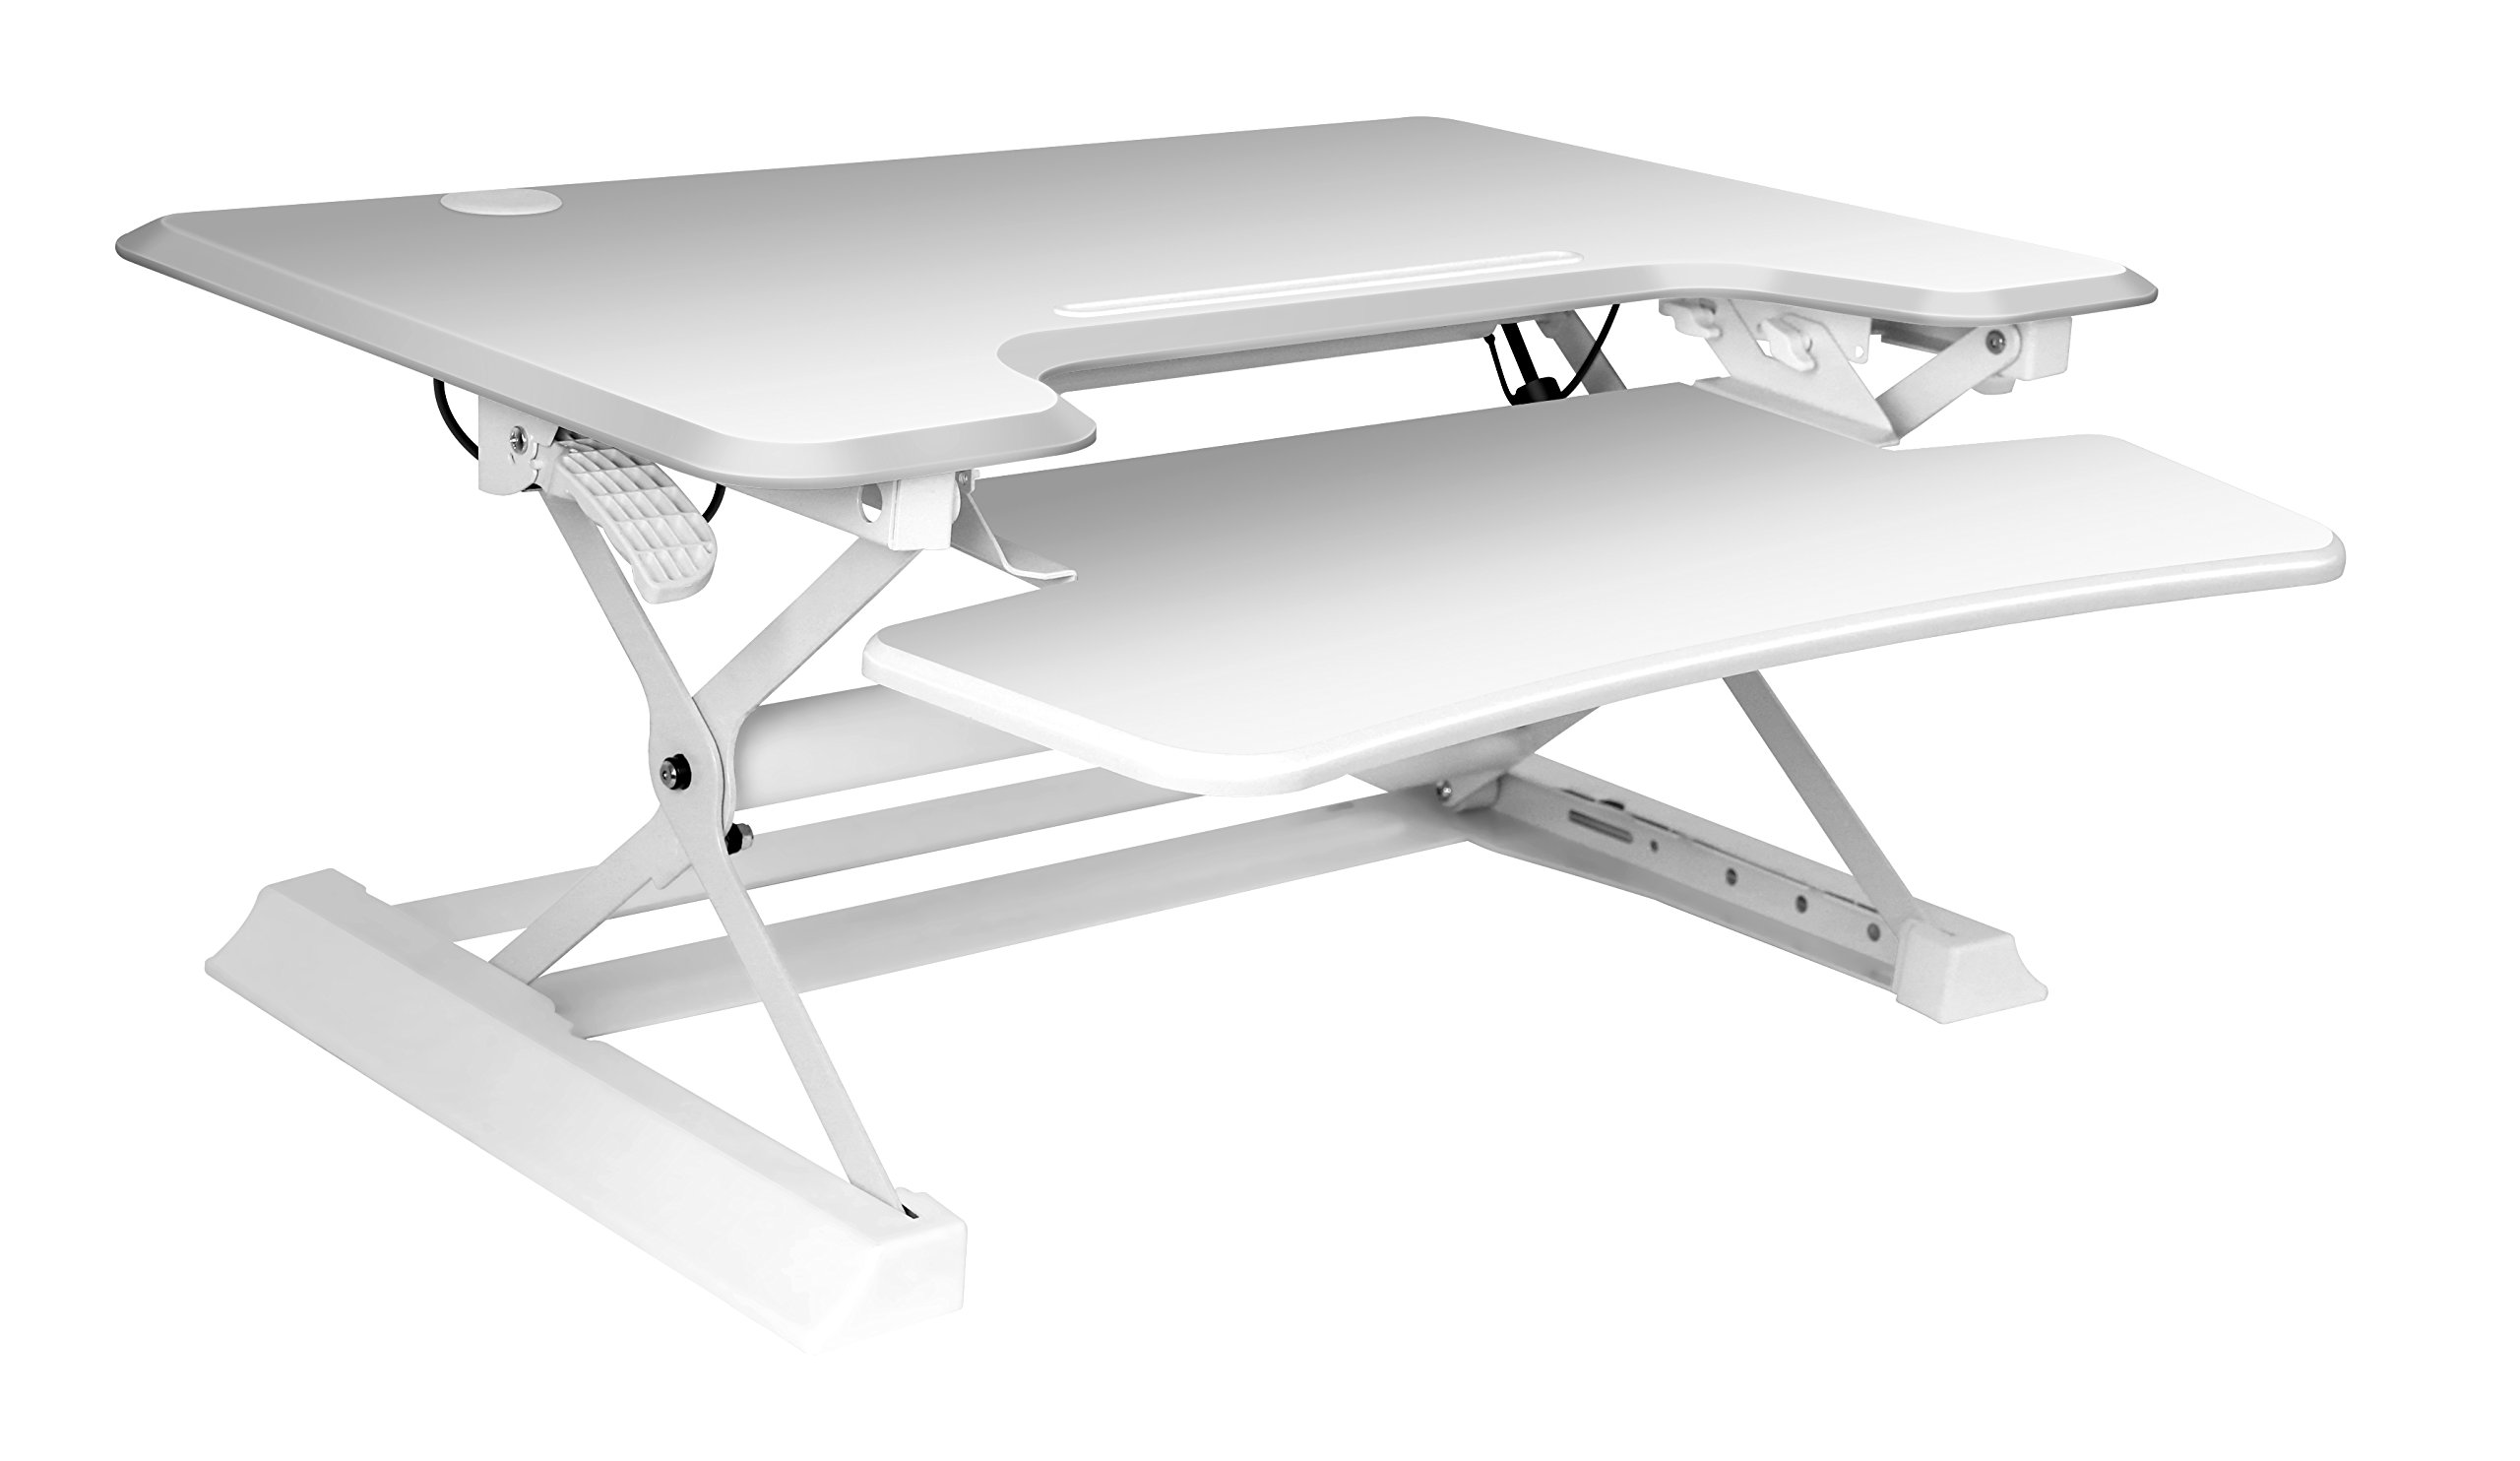 Zeal Height Adjustable Standing Desk Ergonomic Laptop Monitor Standing Dual Riser Sit to Stand Table Computer Workstation Desk (White)